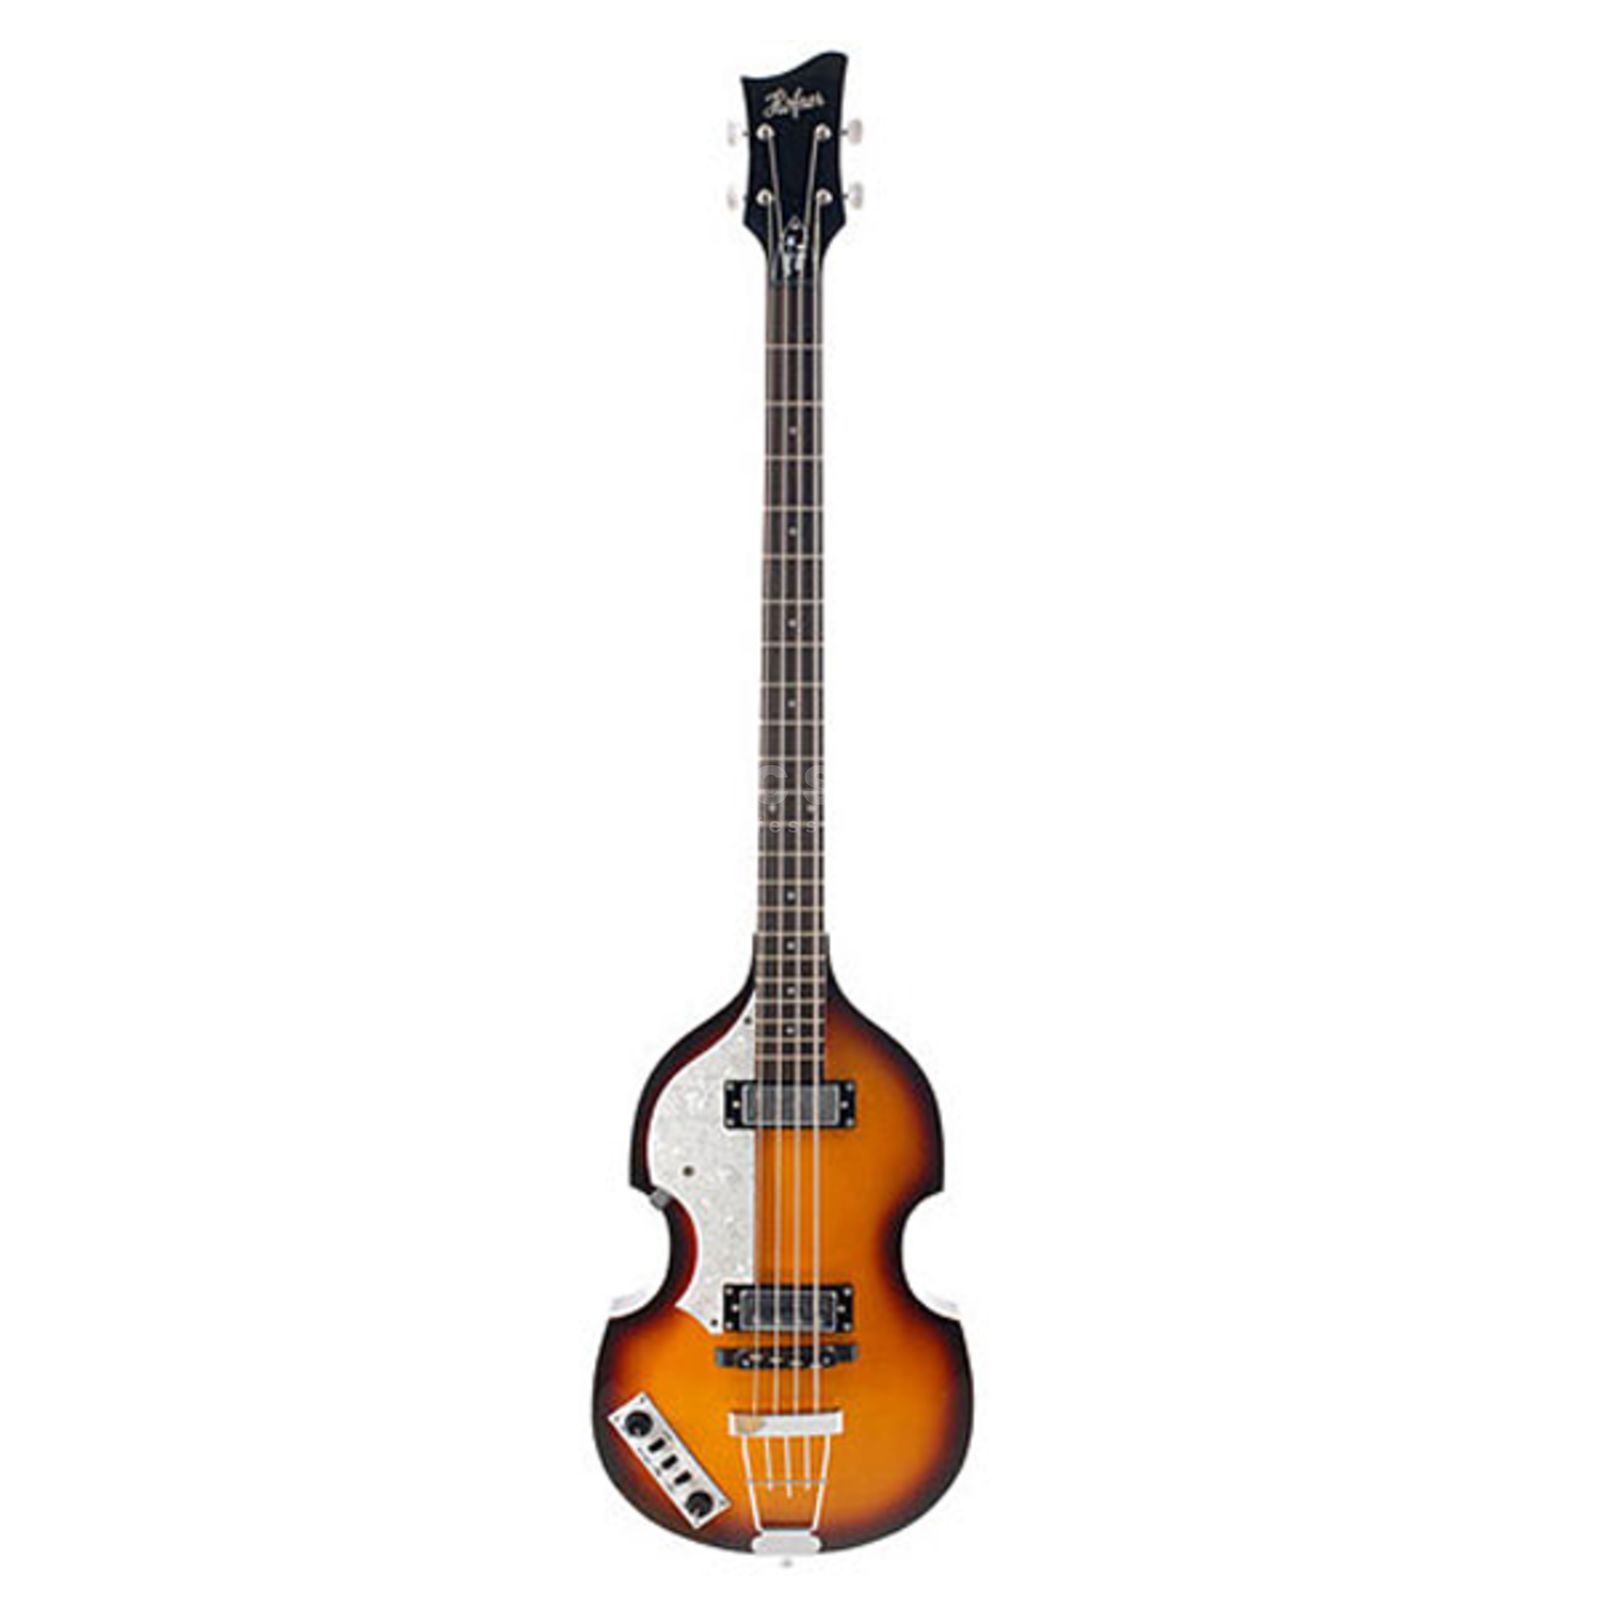 Höfner Ignition Beatles Bass LH VSB Lefthand Vintage Sunburst Image du produit